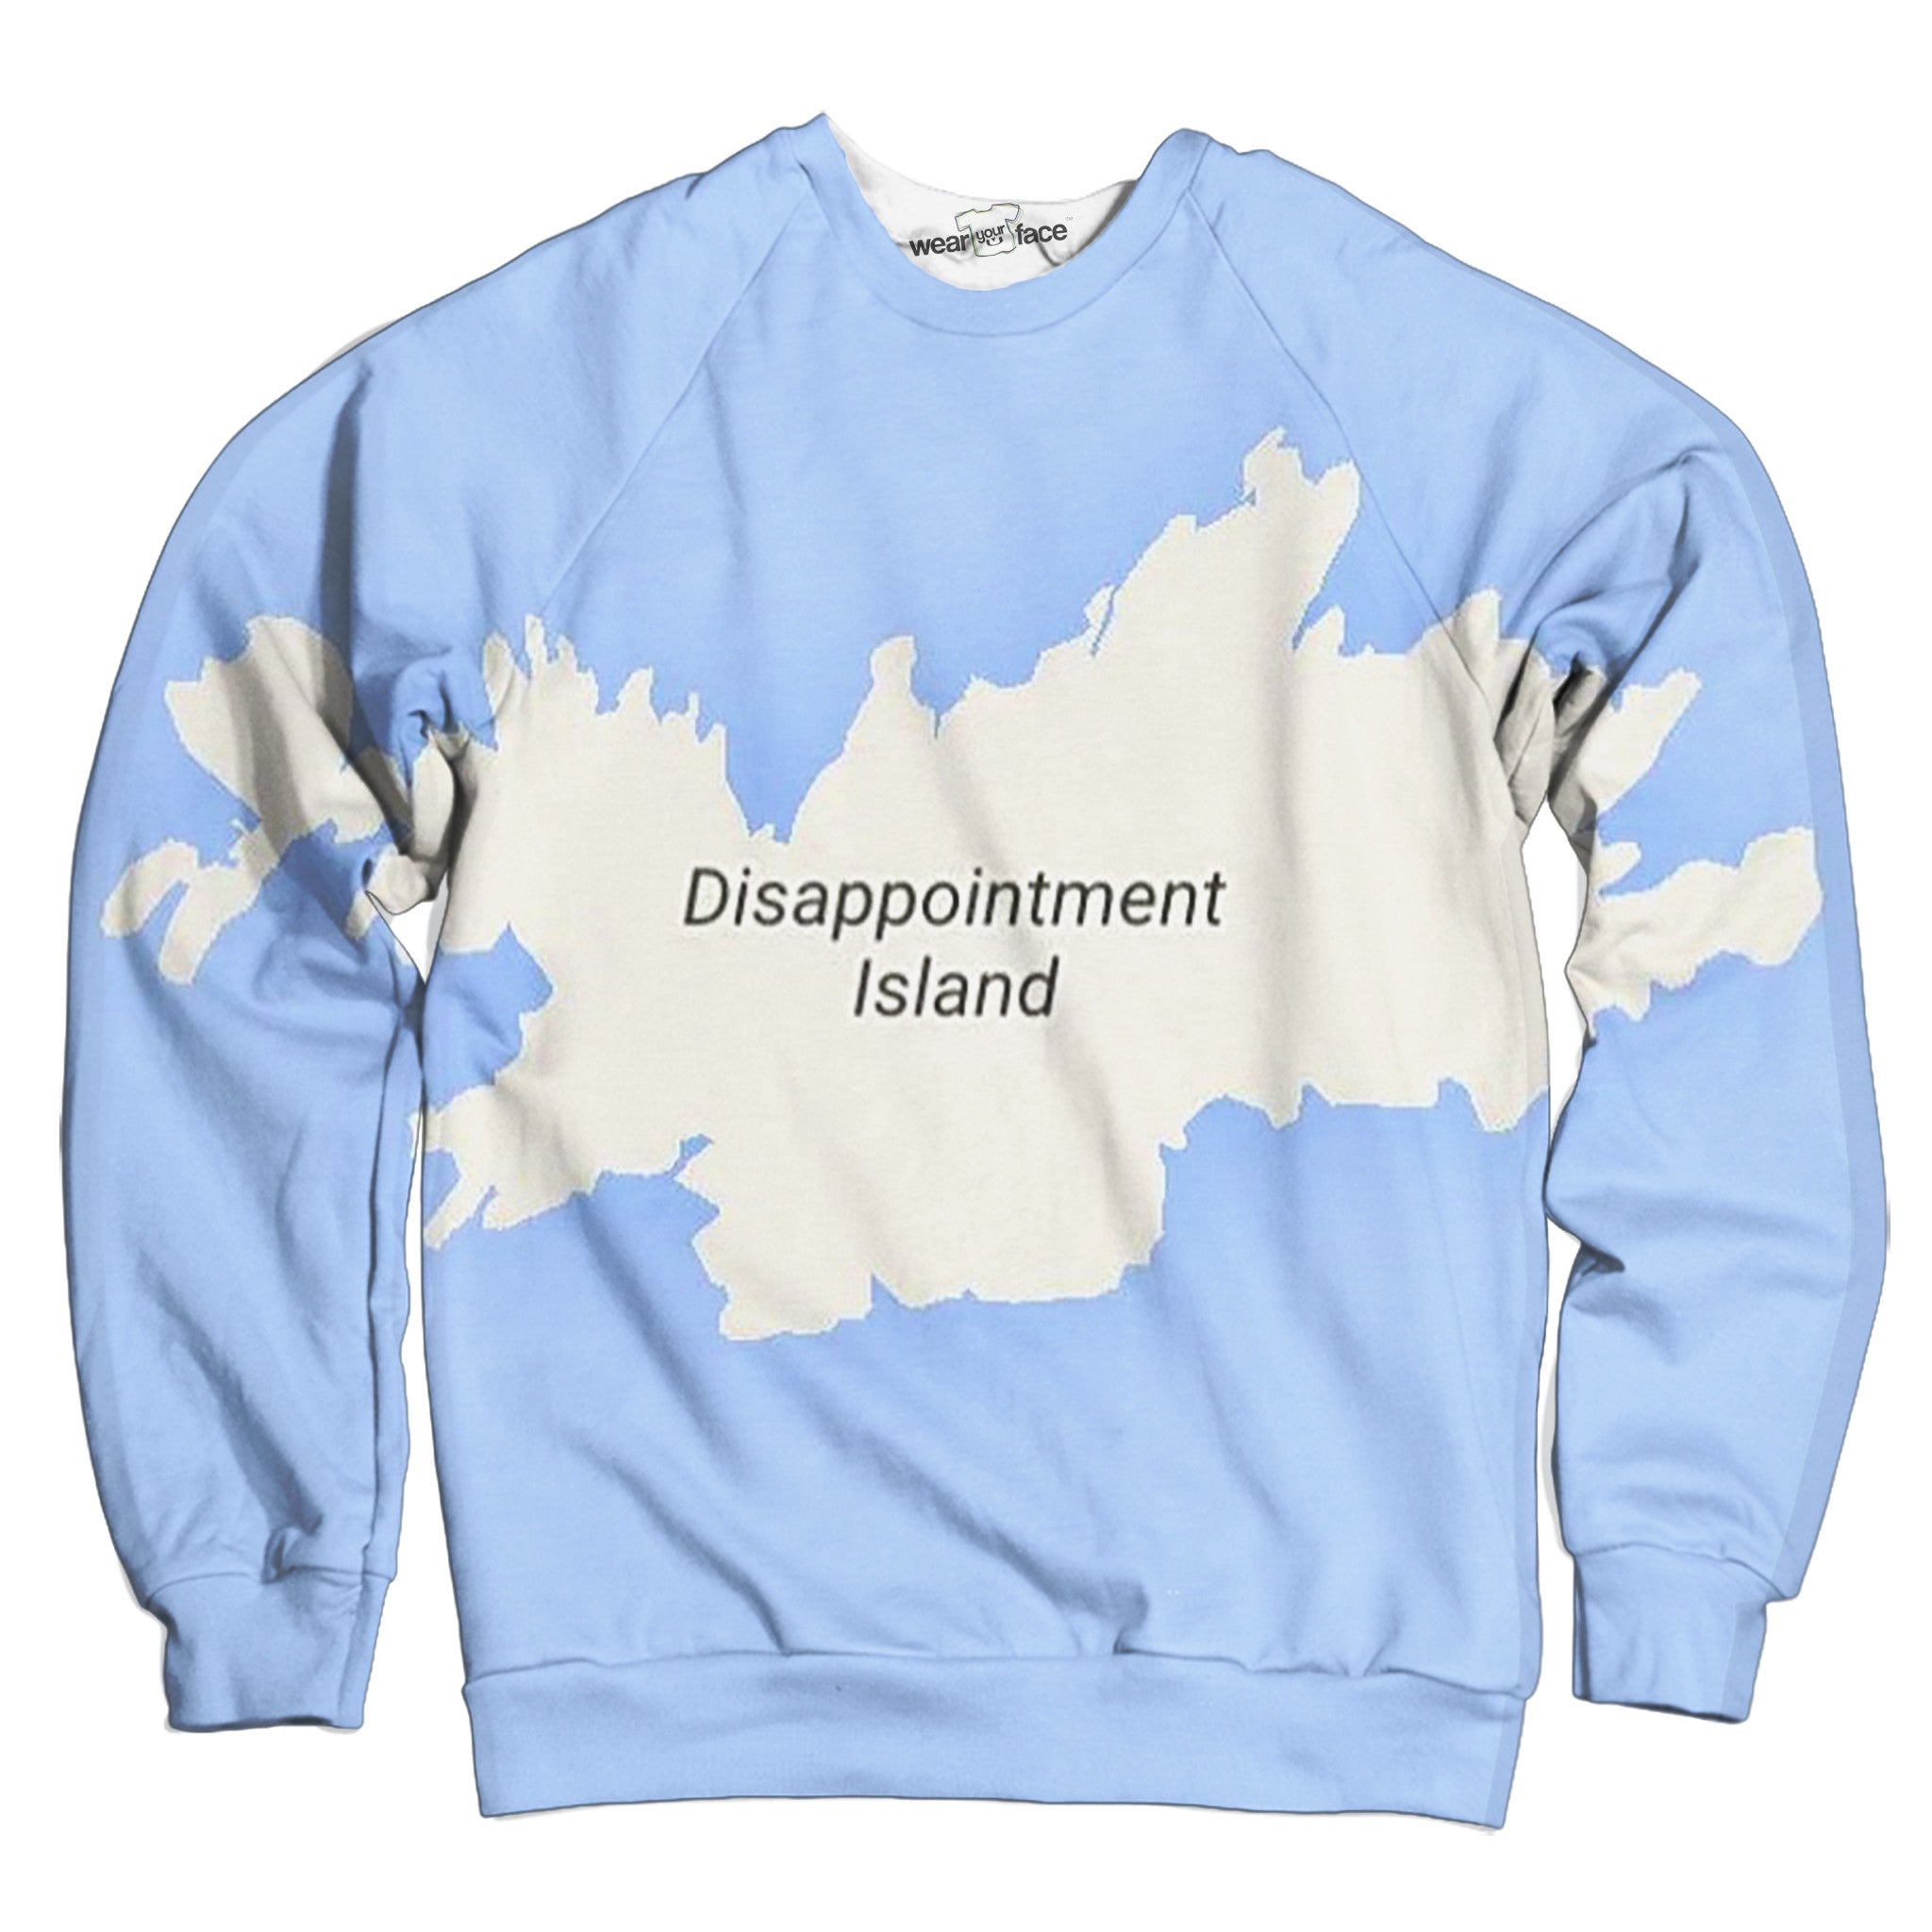 Disappointment Island Sweatshirt